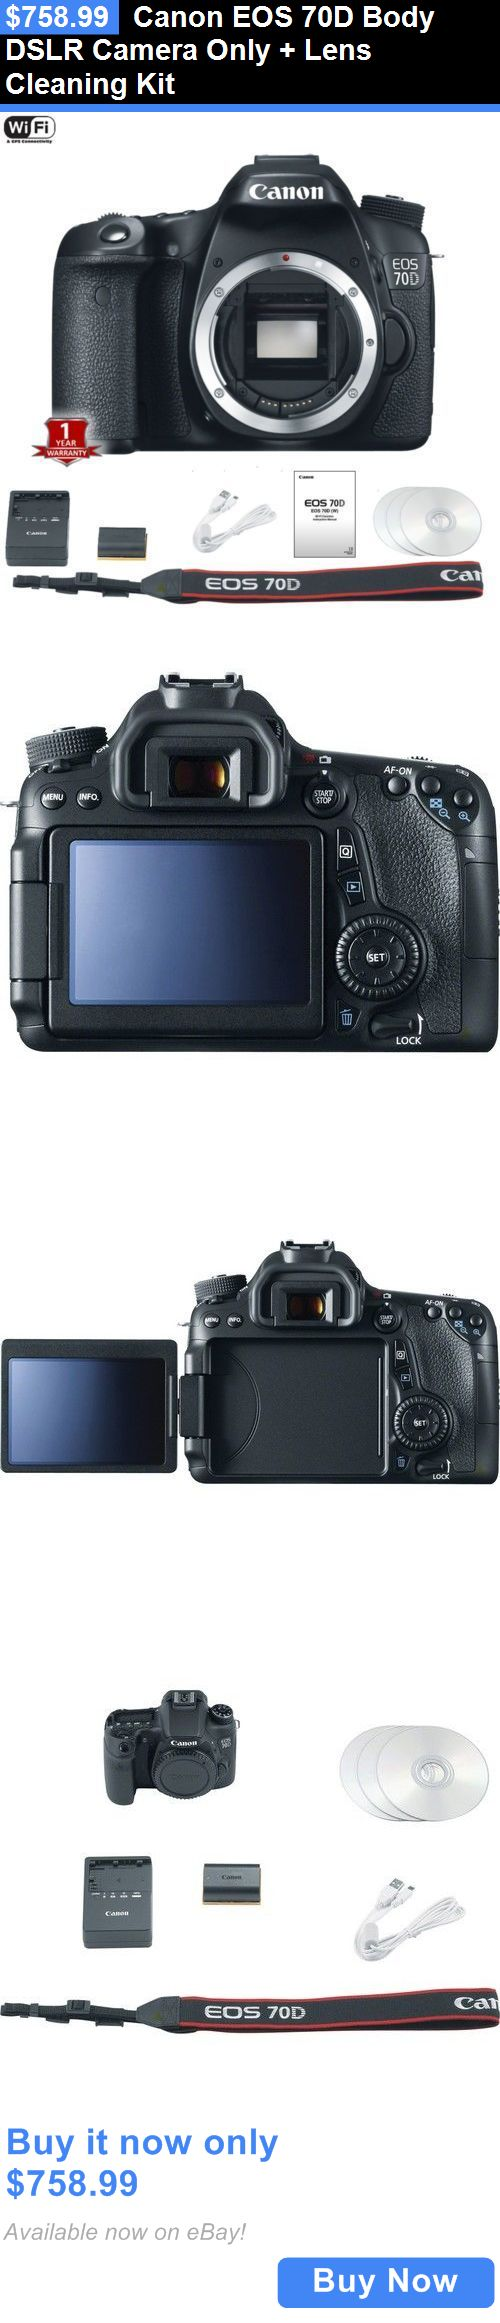 photo and video: Canon Eos 70D Body Dslr Camera Only + Lens Cleaning Kit BUY IT NOW ONLY: $758.99